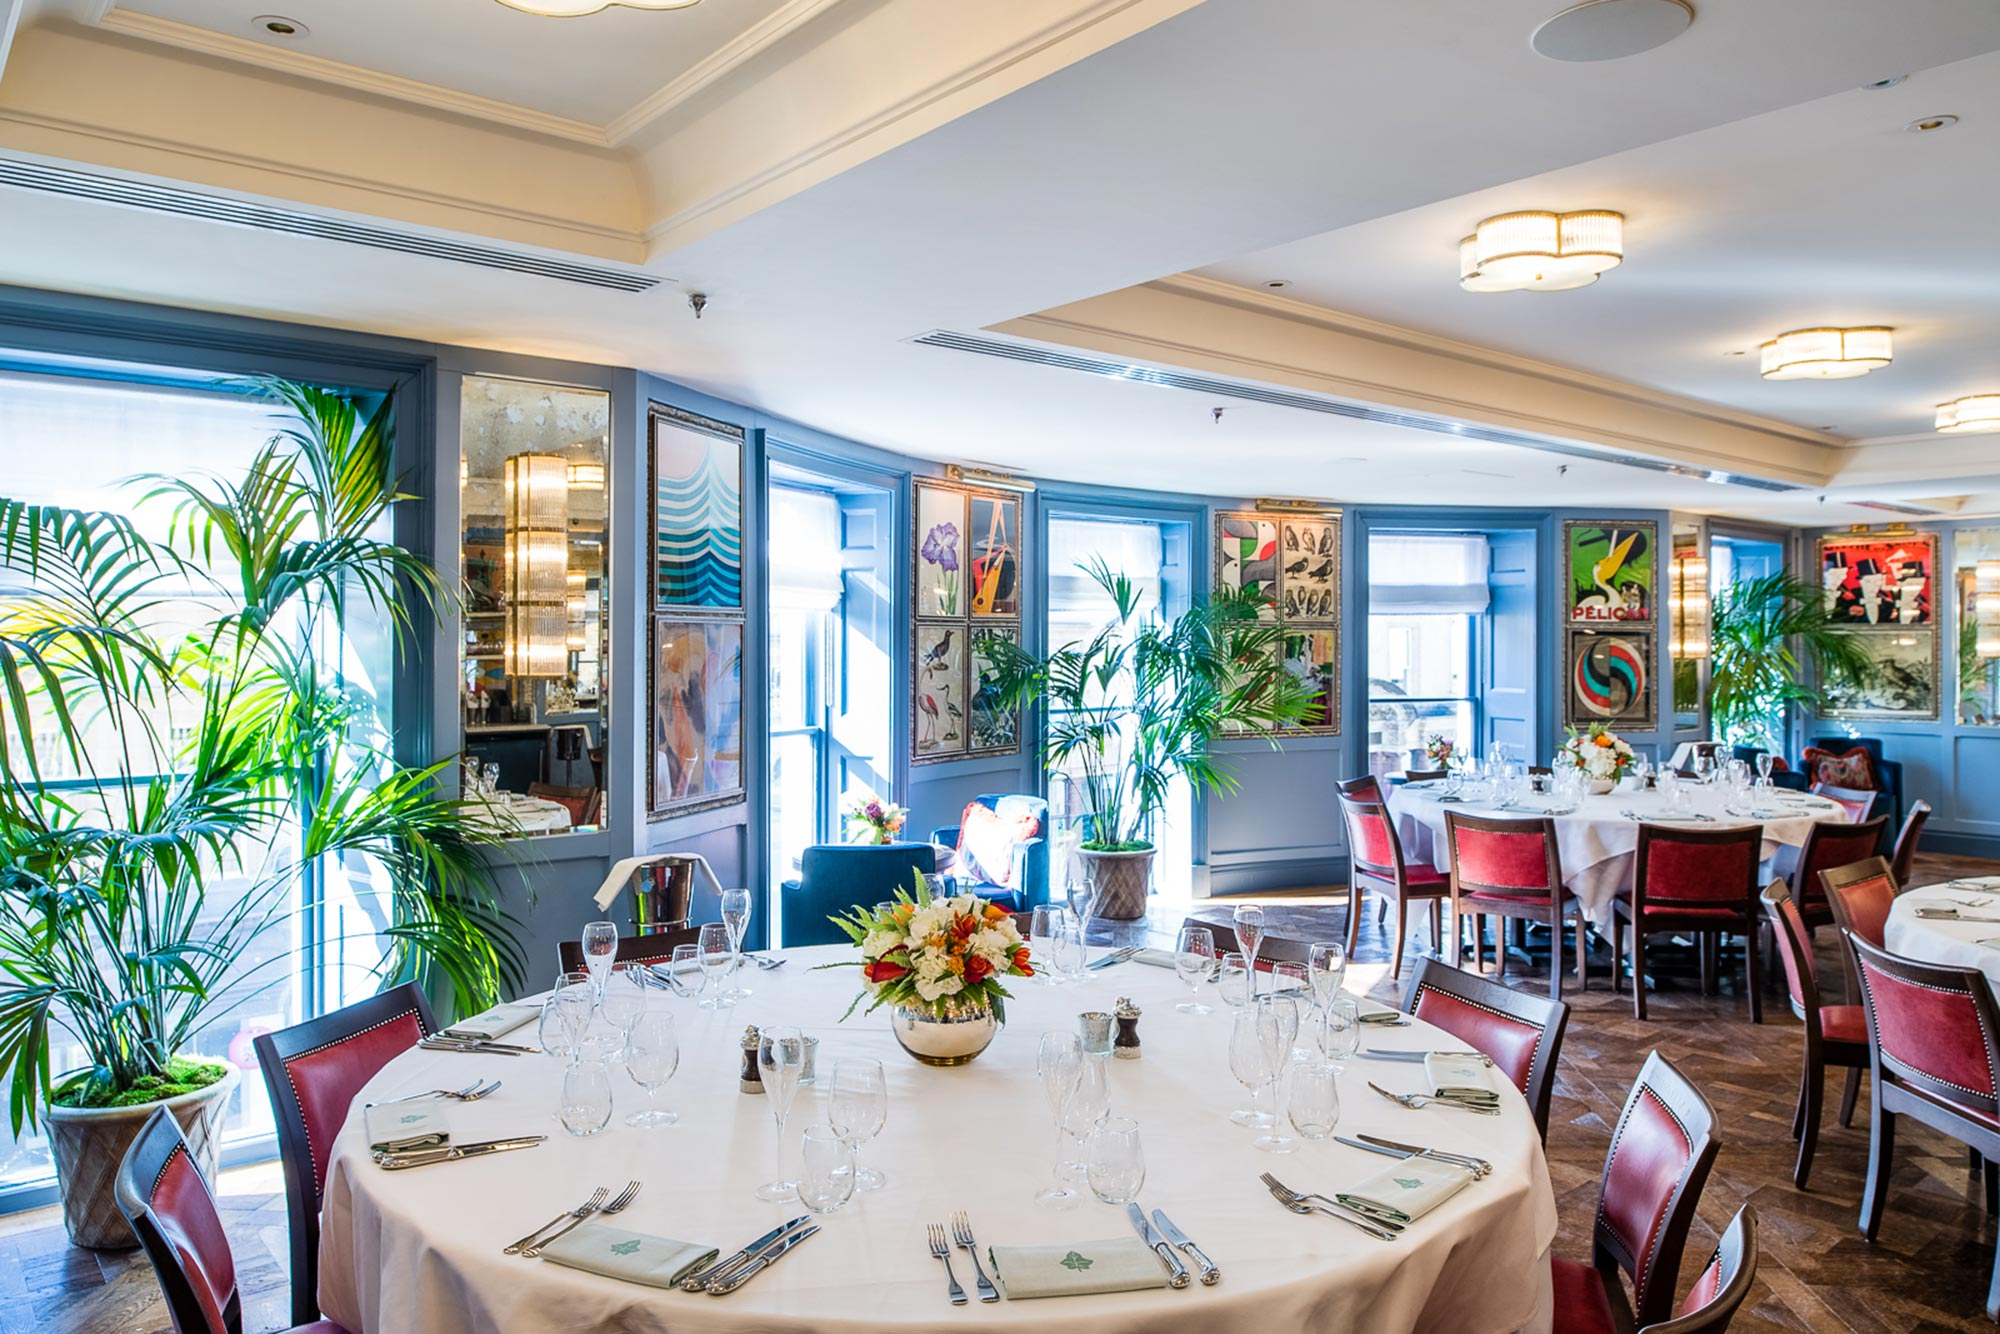 Private Dining Room in Bath, The Ivy Bath Brasserie - The Ivy Bath Brasserie